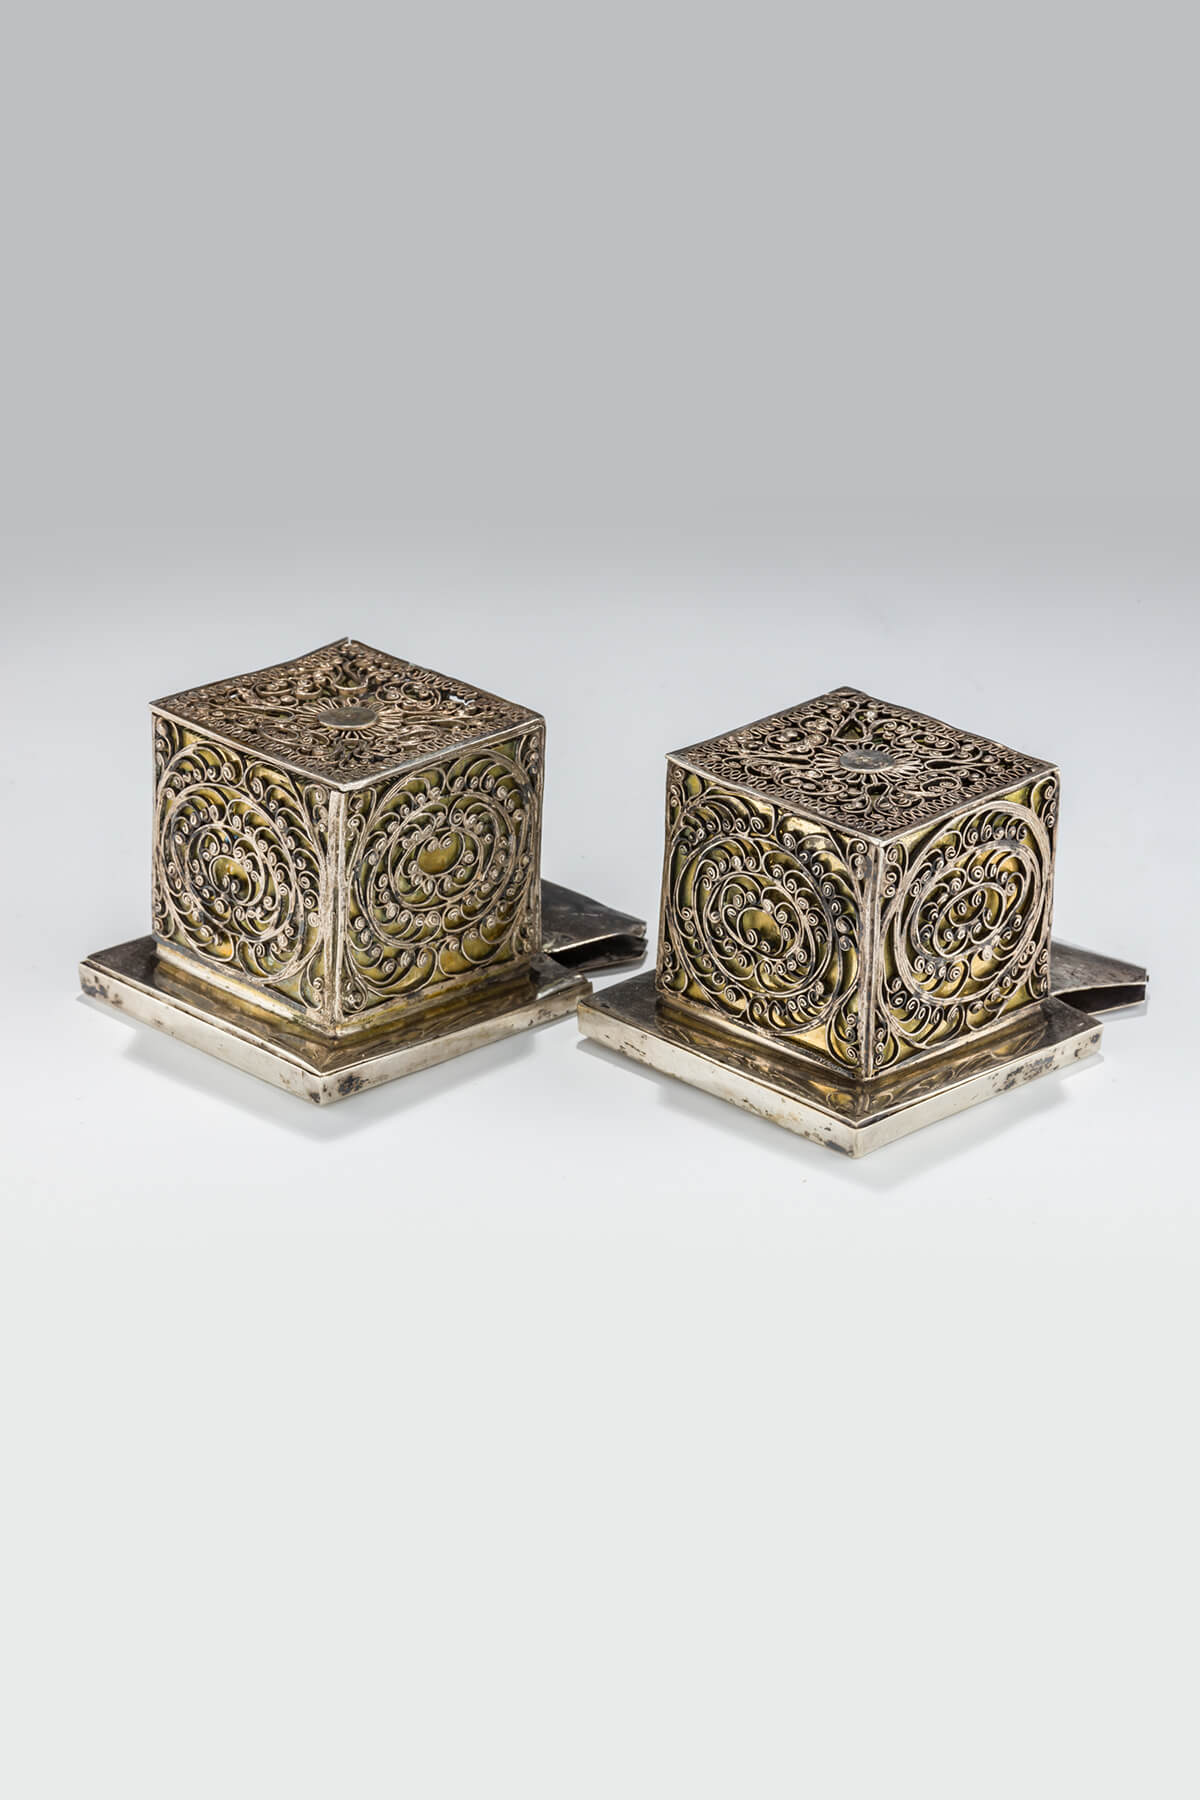 102. A Large and Magnificent Pair of Silver Tefillin Cases